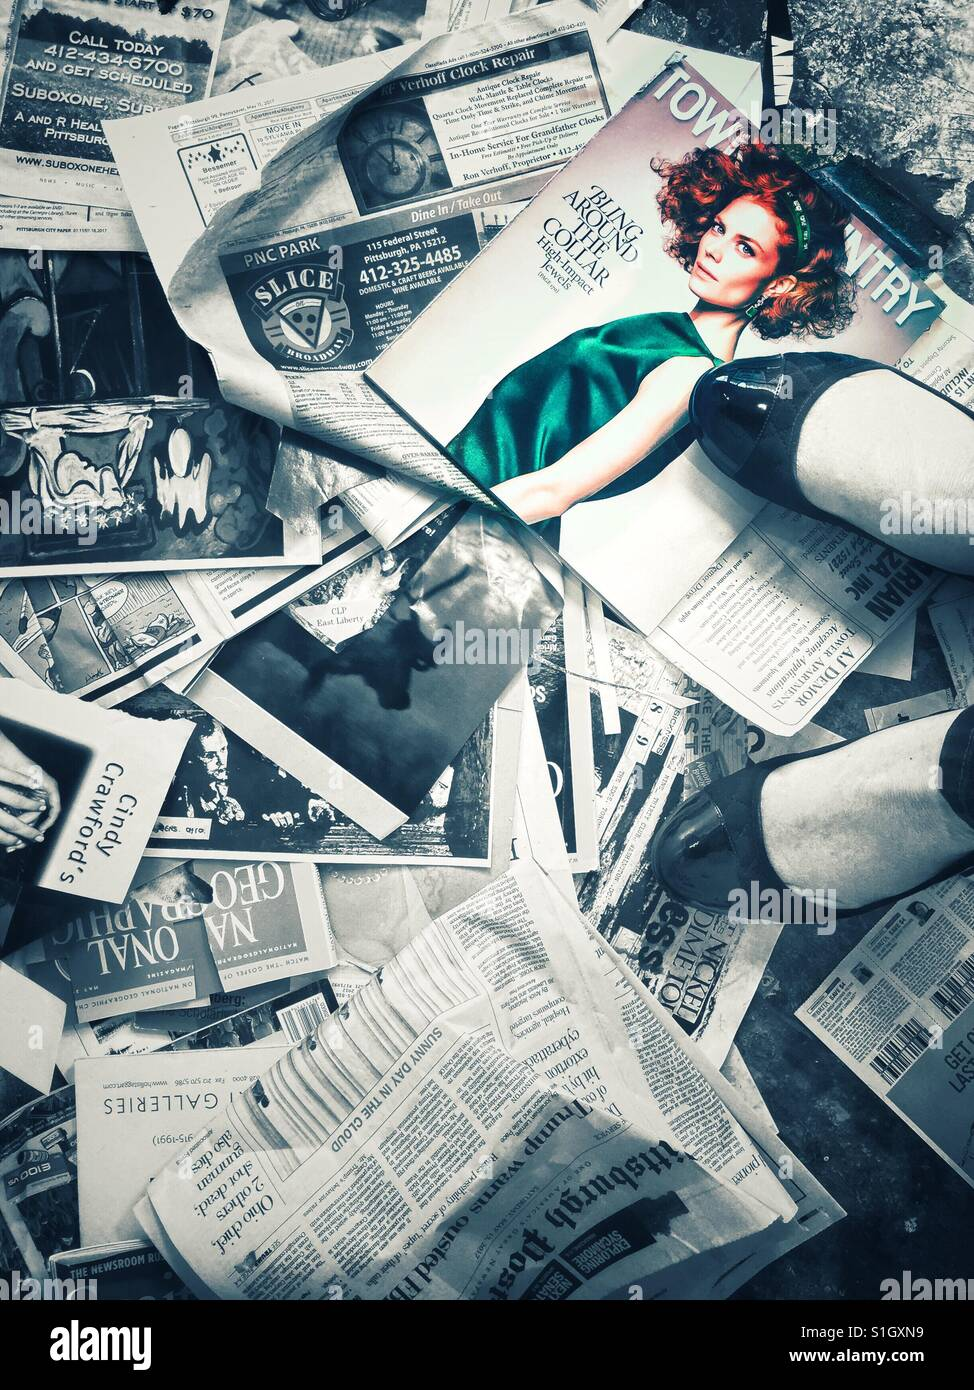 A woman's feet standing on a large number of magazine pages and clippings strewn in the floor, with an image - Stock Image